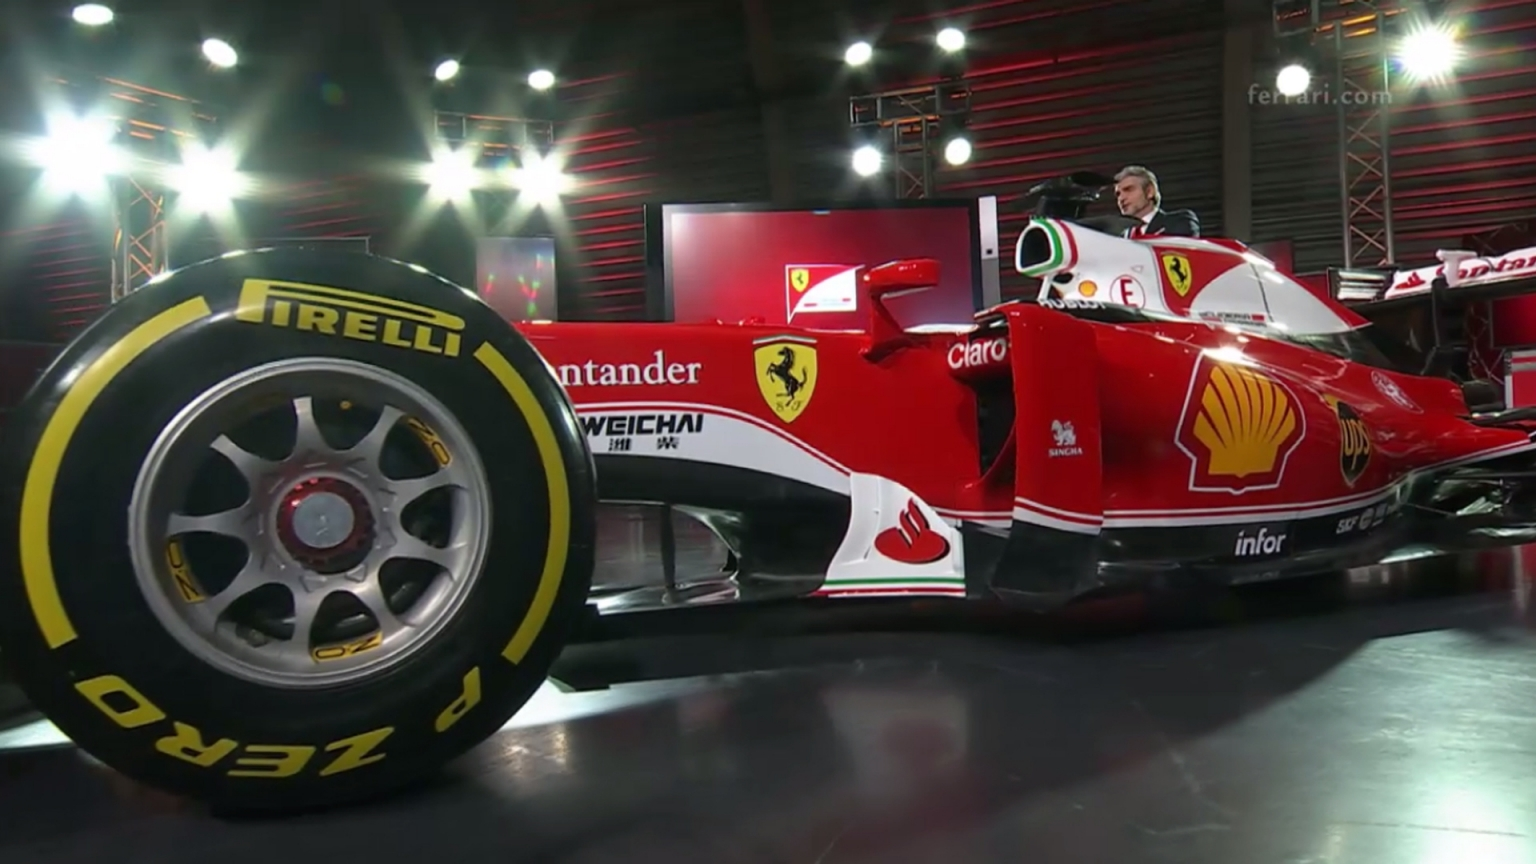 Ferrari present the SF16-H - in red and white